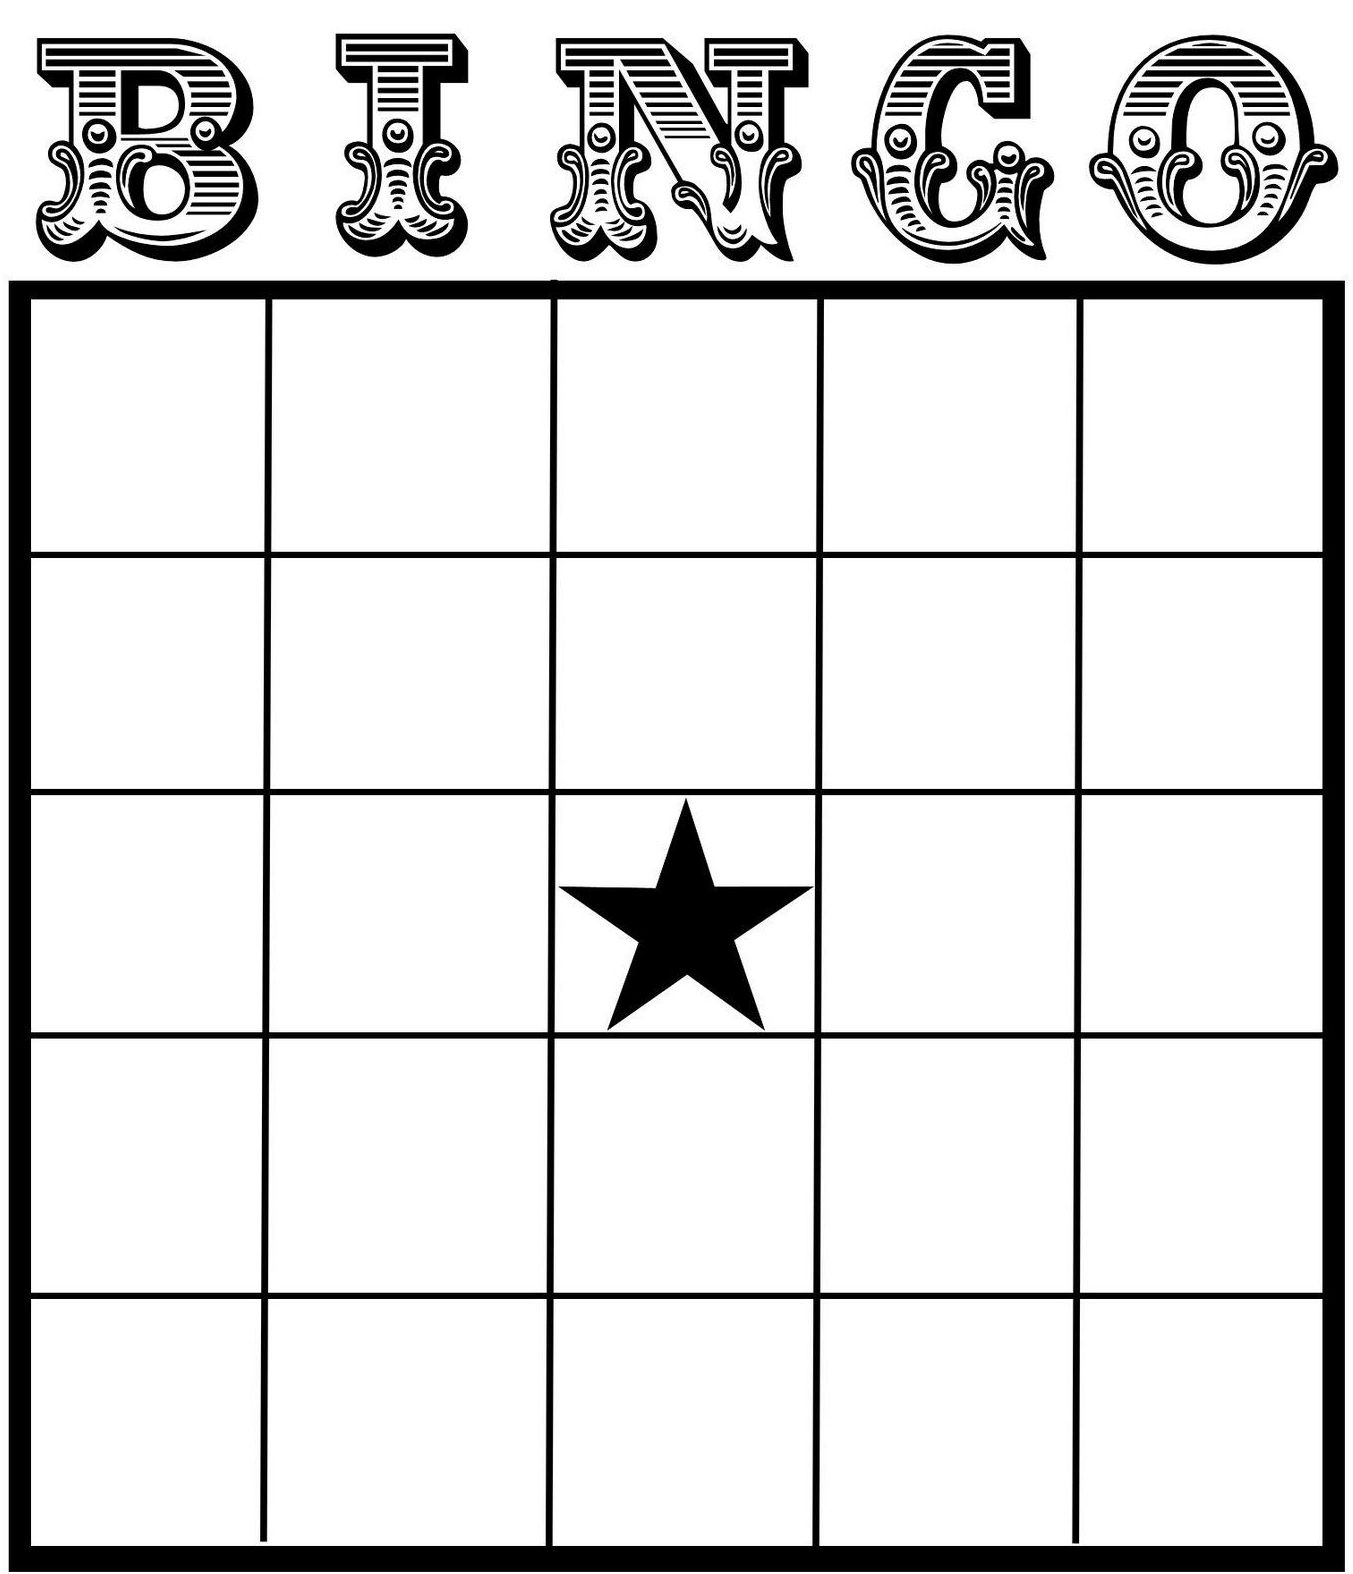 Free Printable Bingo Card Template - Set Your Plan & Tasks With Best - Free Printable Bingo Cards For Large Groups